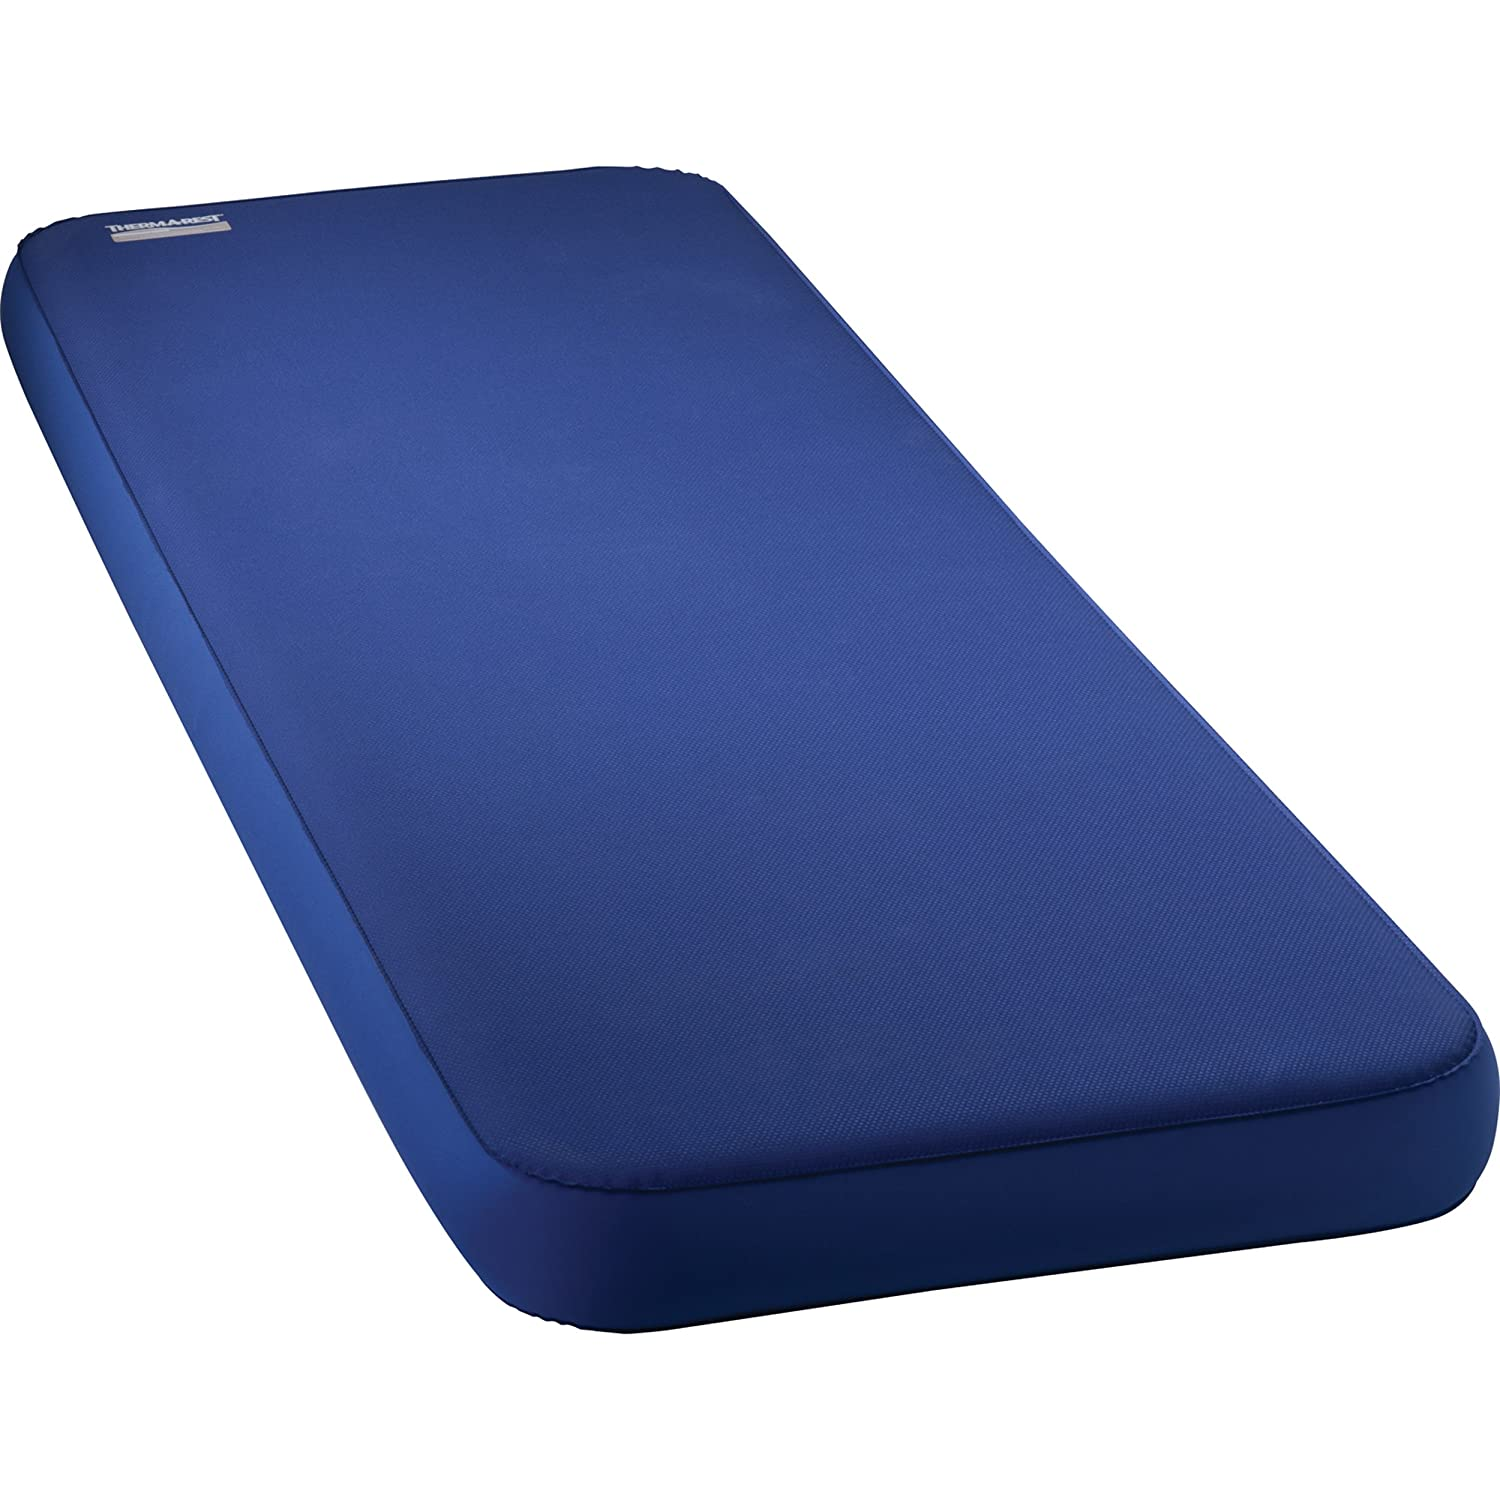 Therm-a-Rest MondoKing 3D Self Inflating Foam Camping Air Mattress